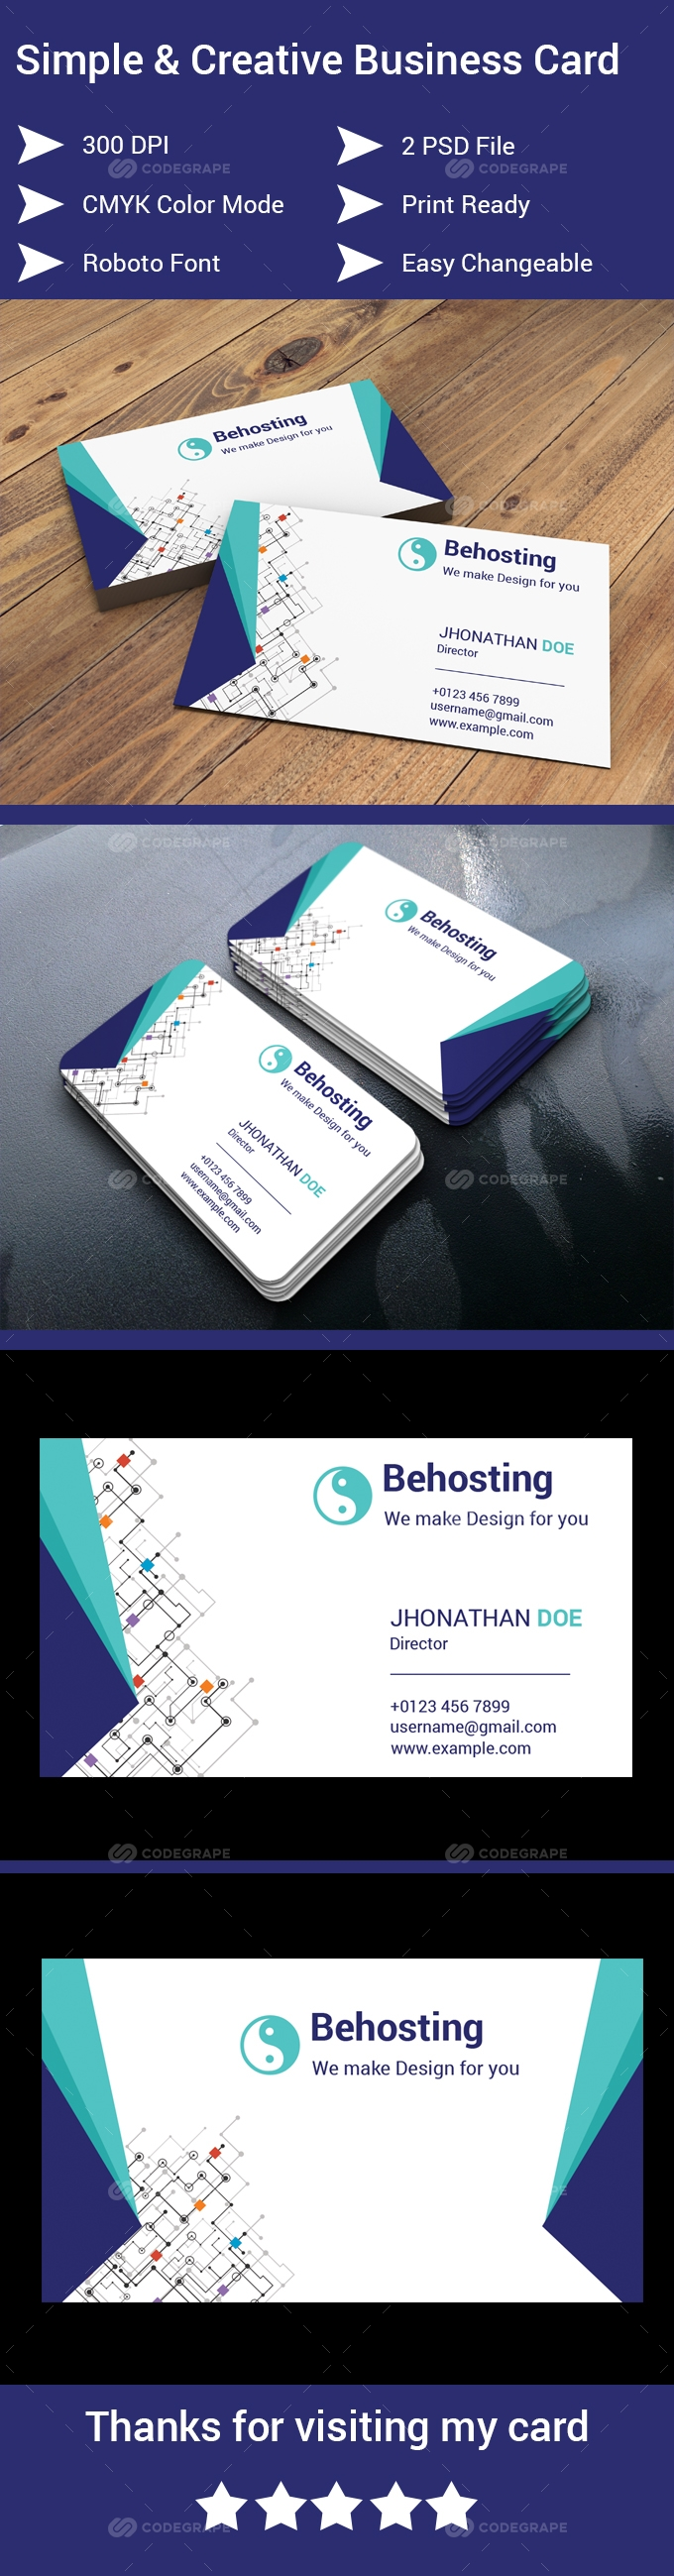 Behosting Business Card